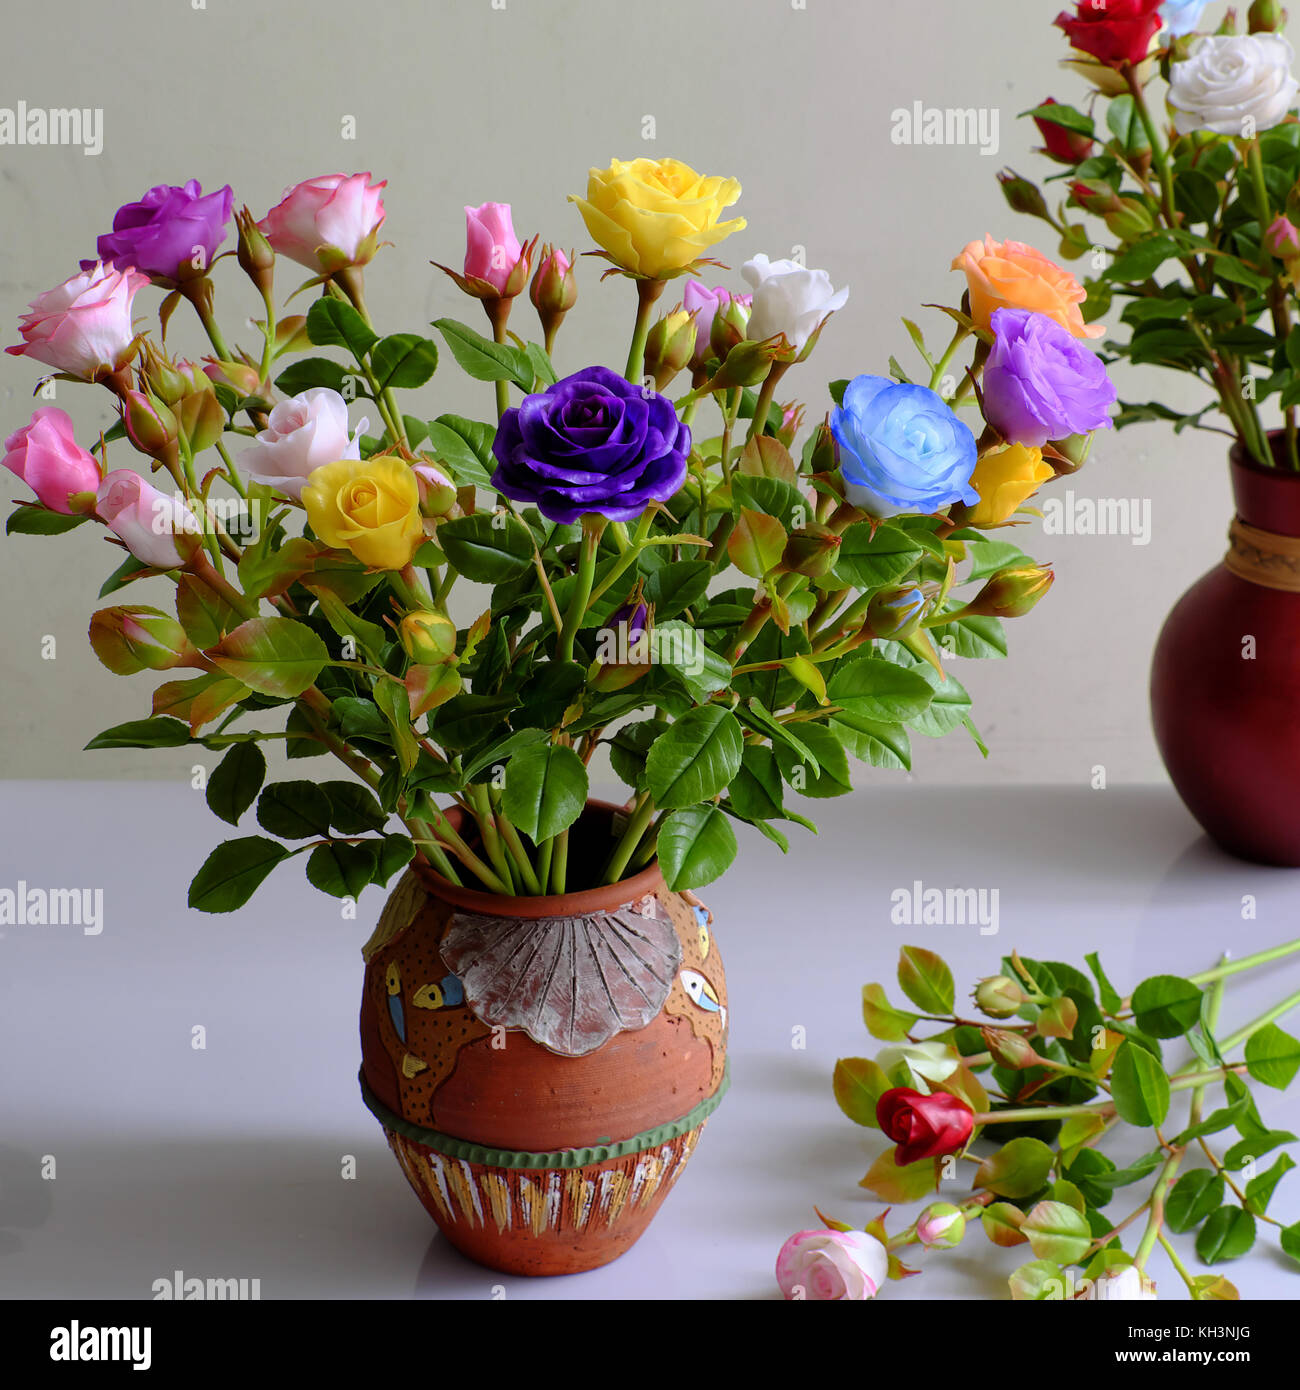 Wonderful vase of rose from clay, colorful roses very beautiful ...